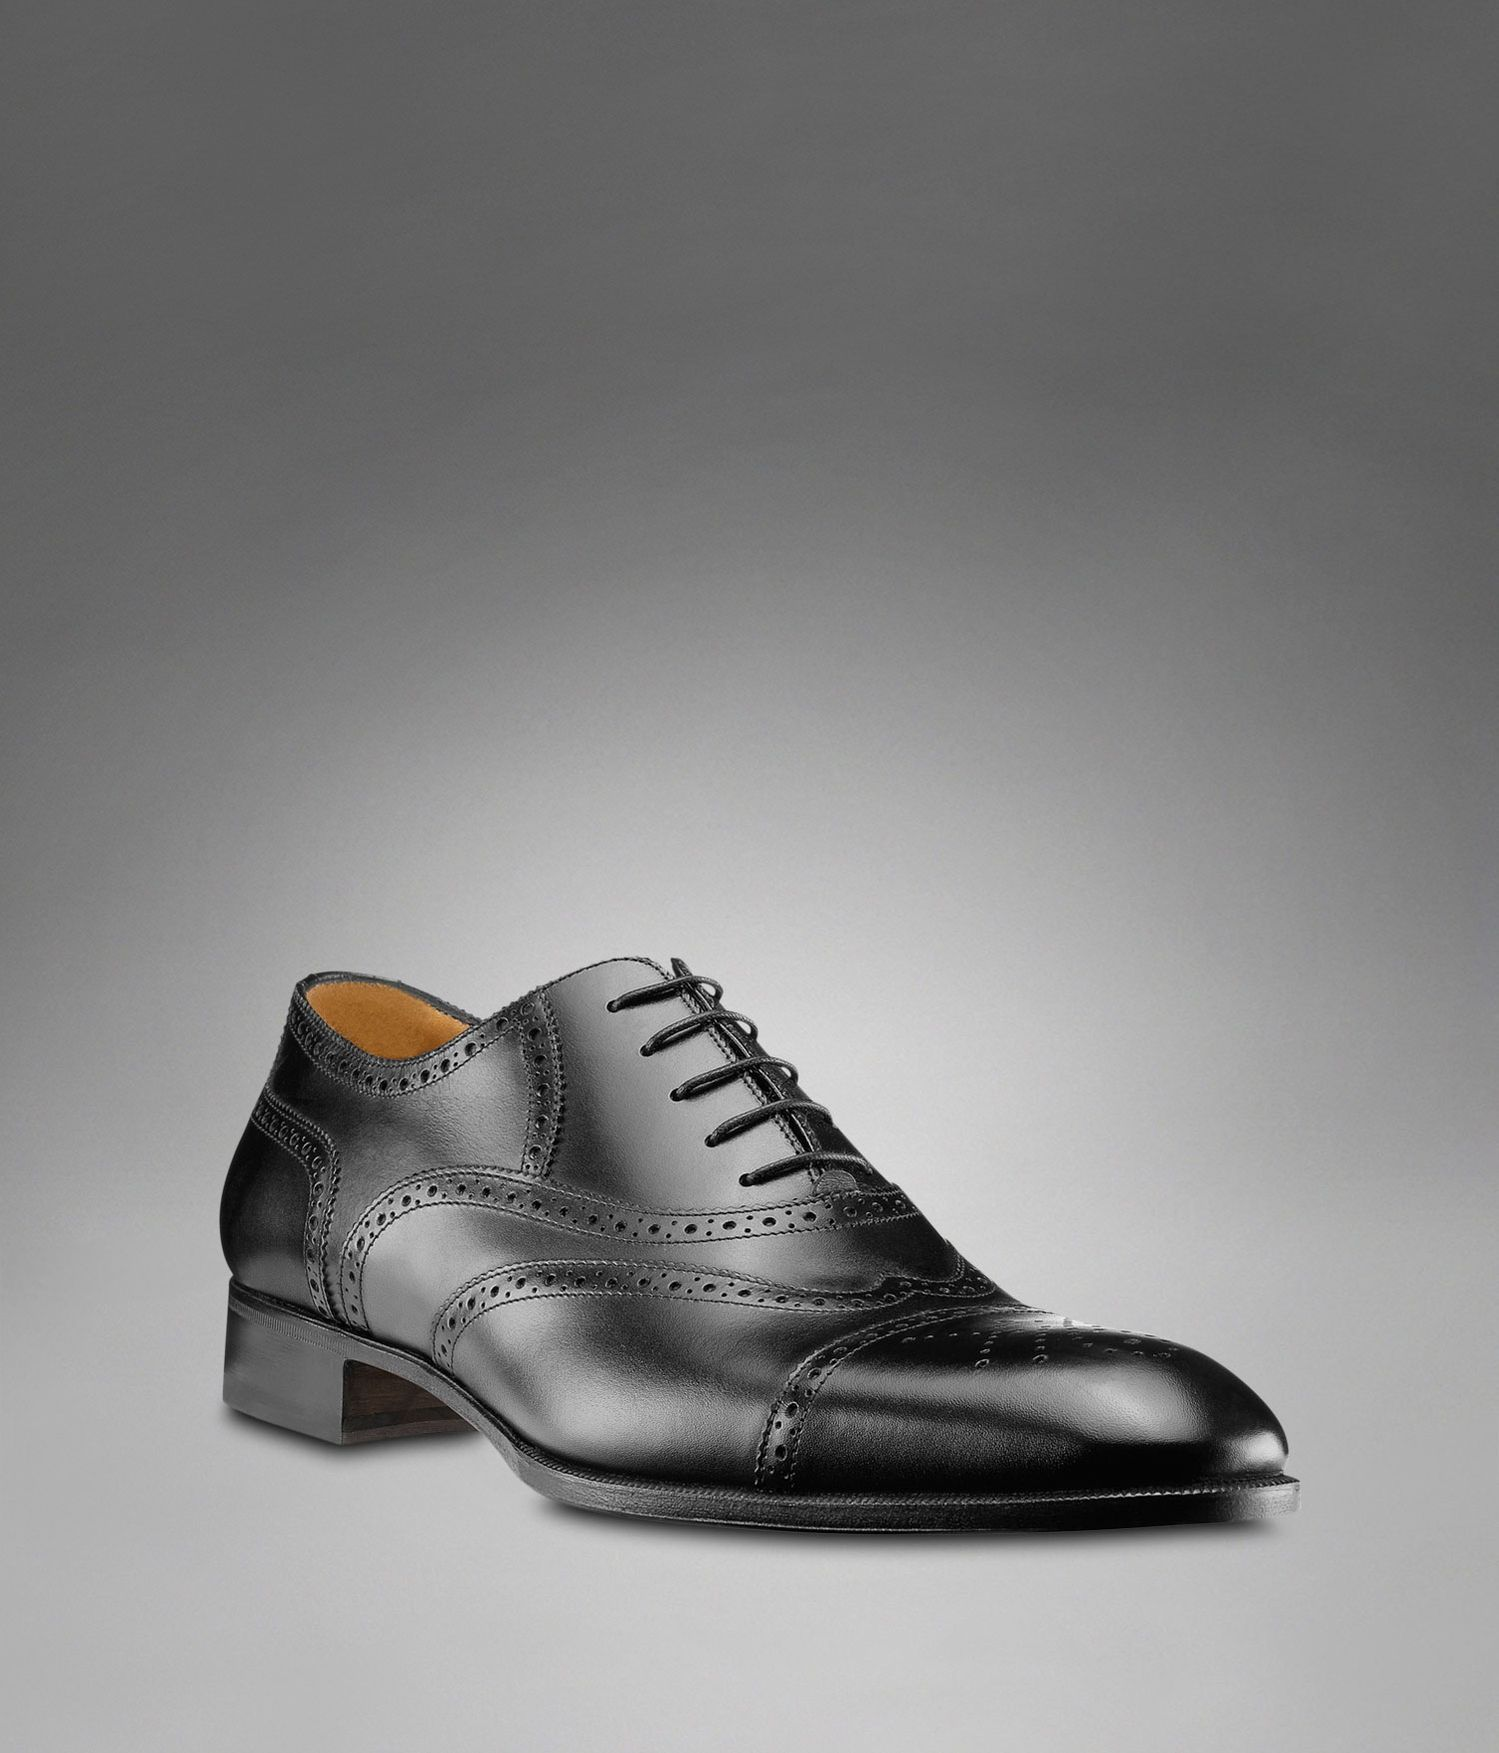 55ed6a5046a YSL Eton Lace-up in Black Leather - Classic – Shoes – Men – Yves Saint  Laurent – www.ysl.com